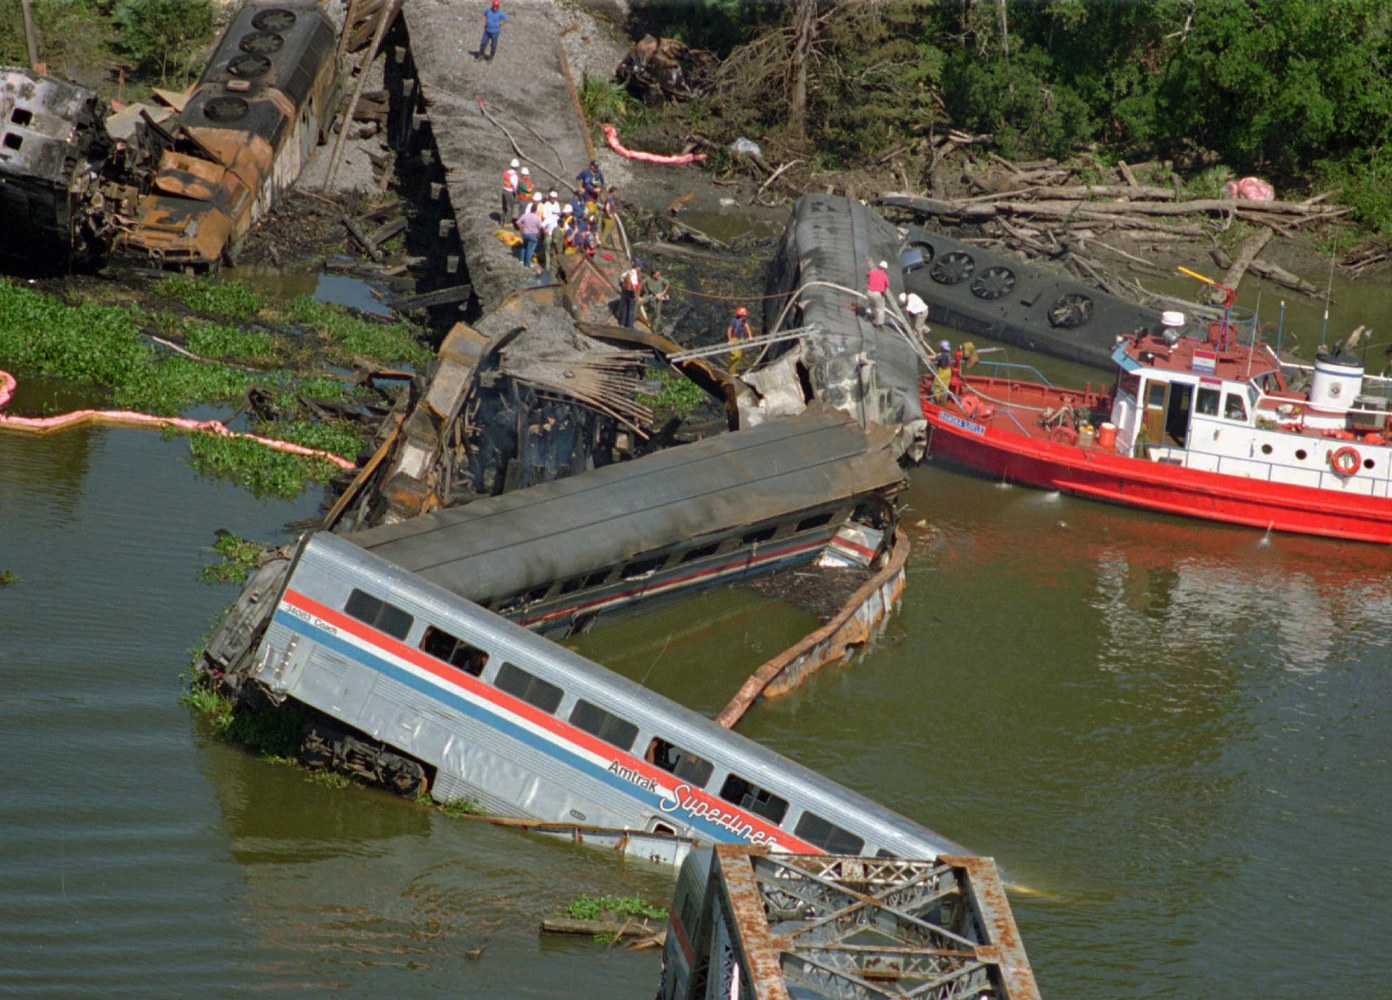 Deadliest Train Crashes In The U S Over The Past 25 Years